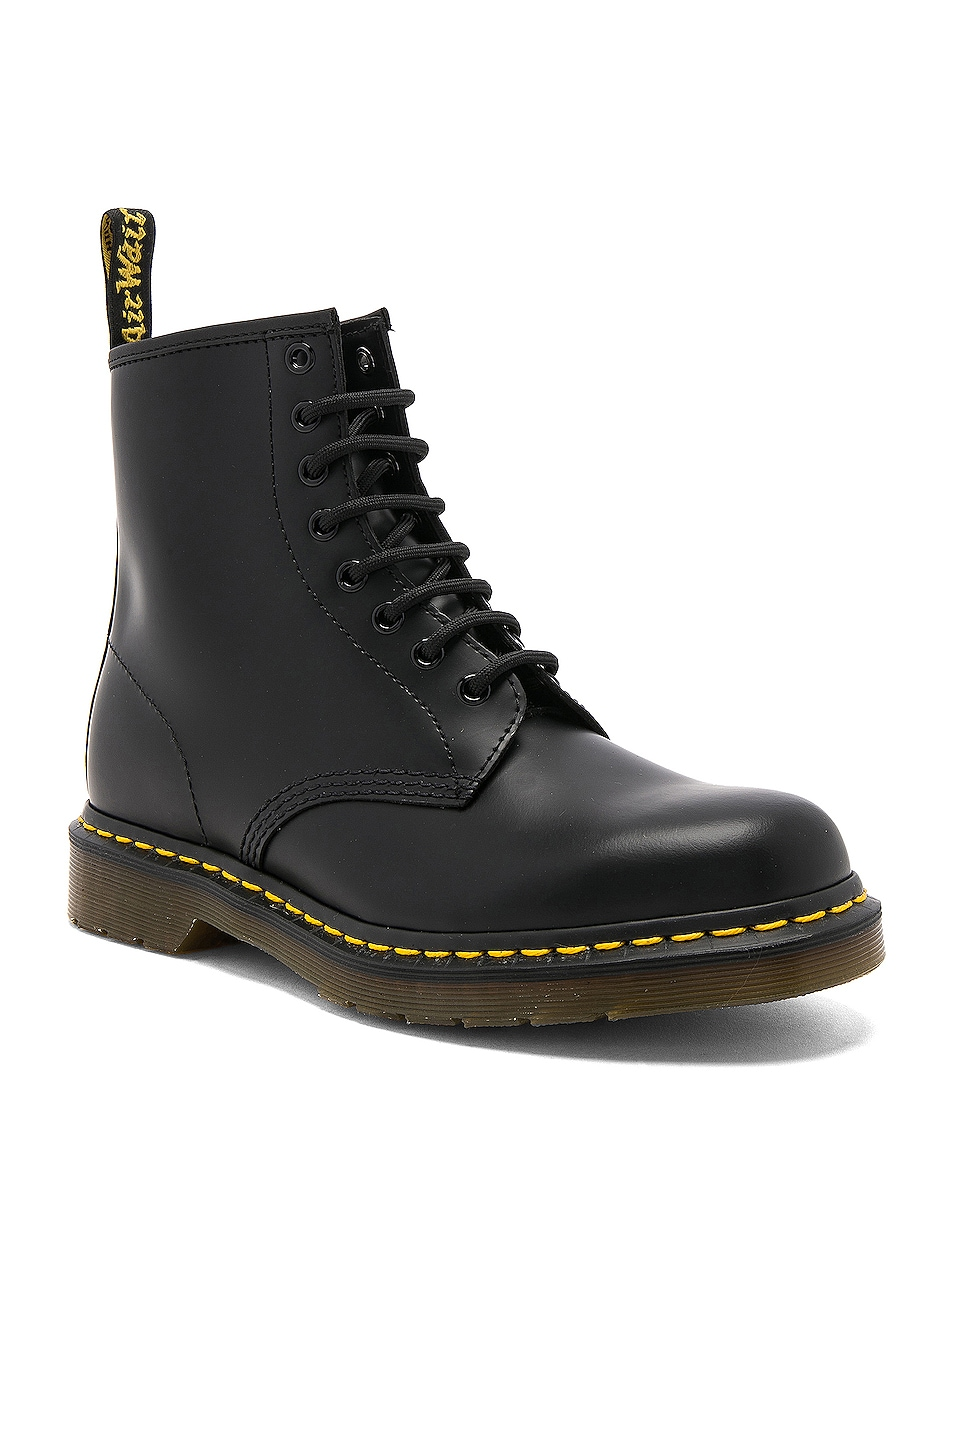 Image 2 of Dr. Martens 1460 8 Eye Leather Boots in Black